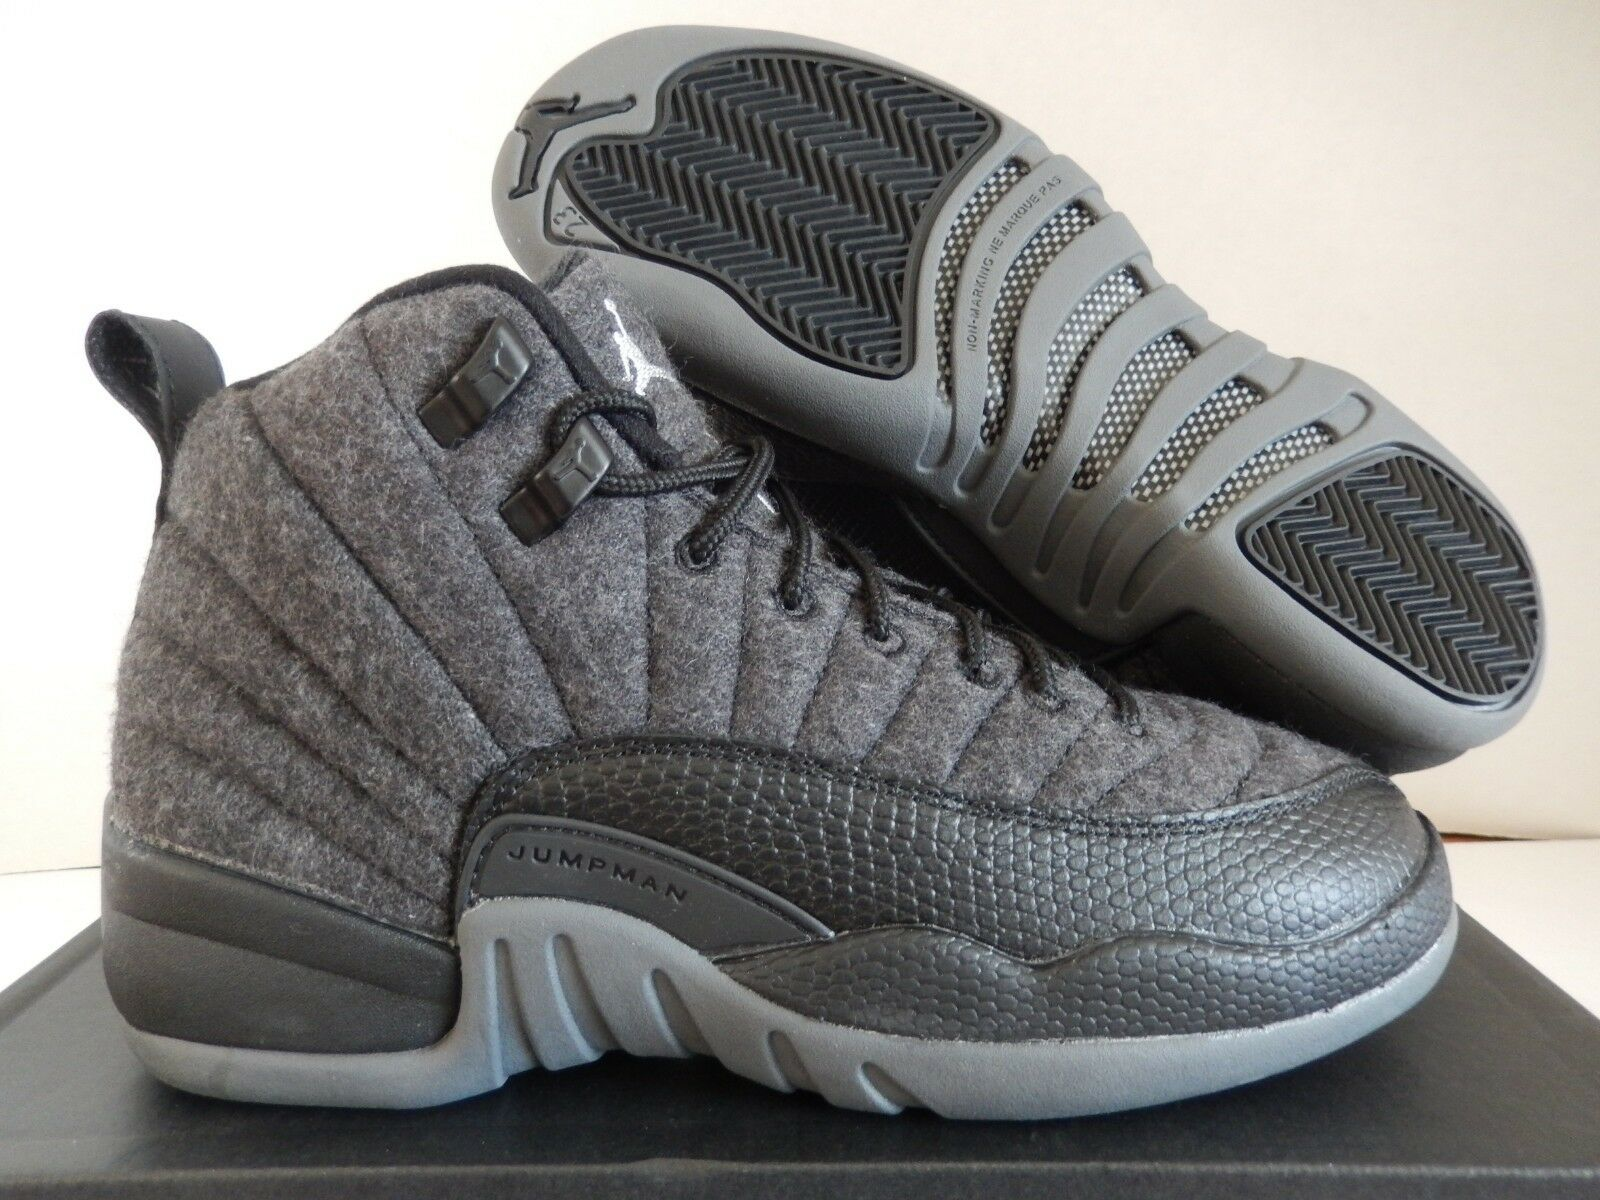 NIKE AIR JORDAN 12 RETRO WOOL BG DARK GREY SZ 5.5Y-WOMENS SZ 7